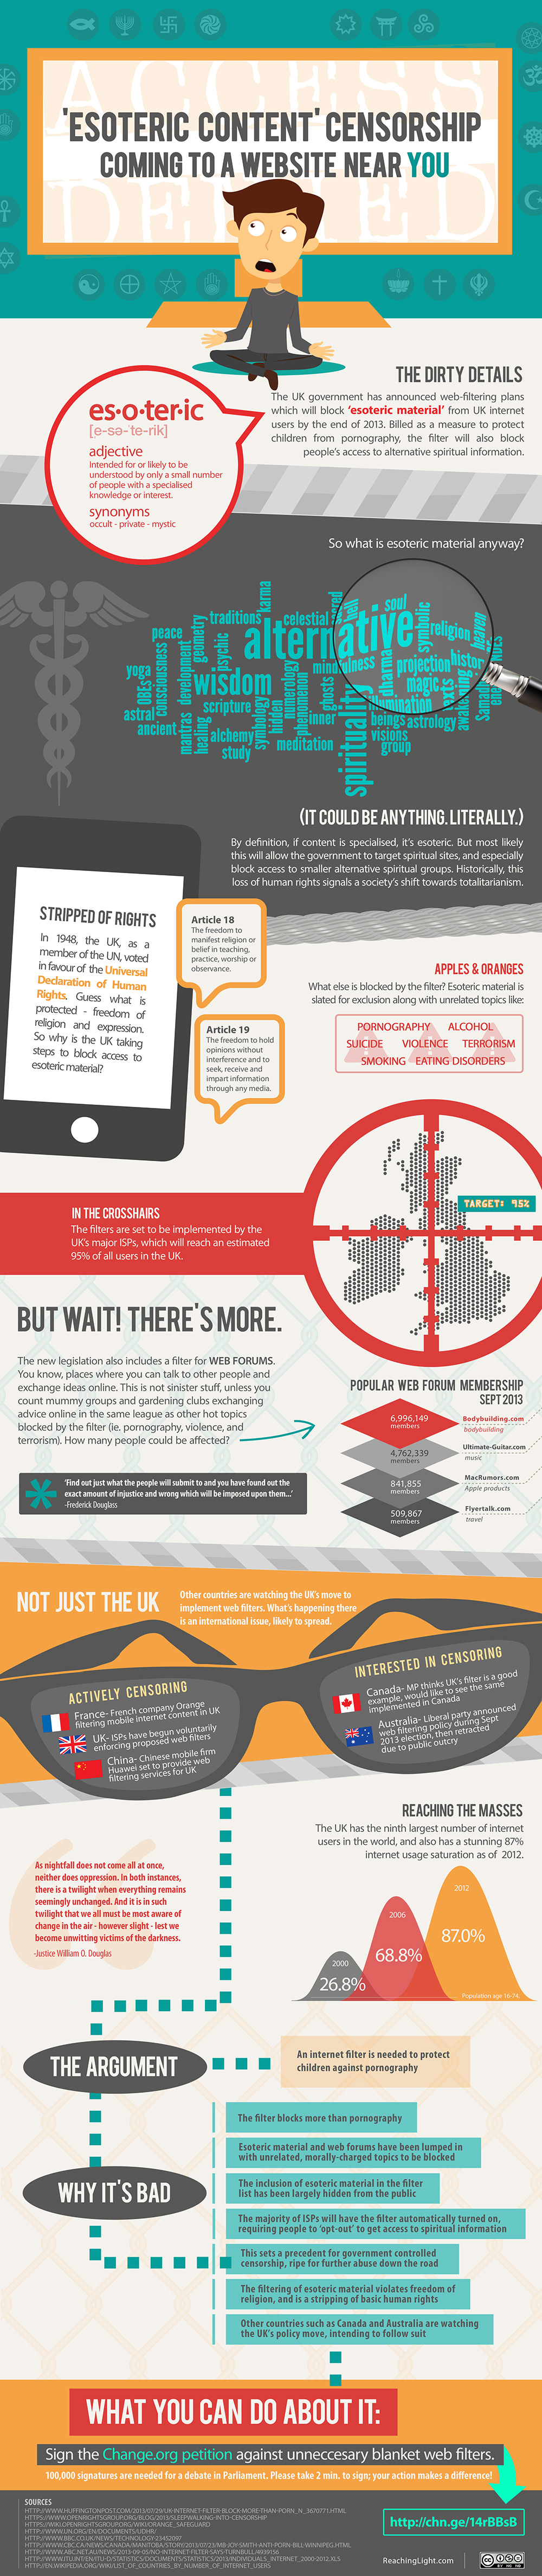 Infographic: UK Filter to Block 'Esoteric Content'